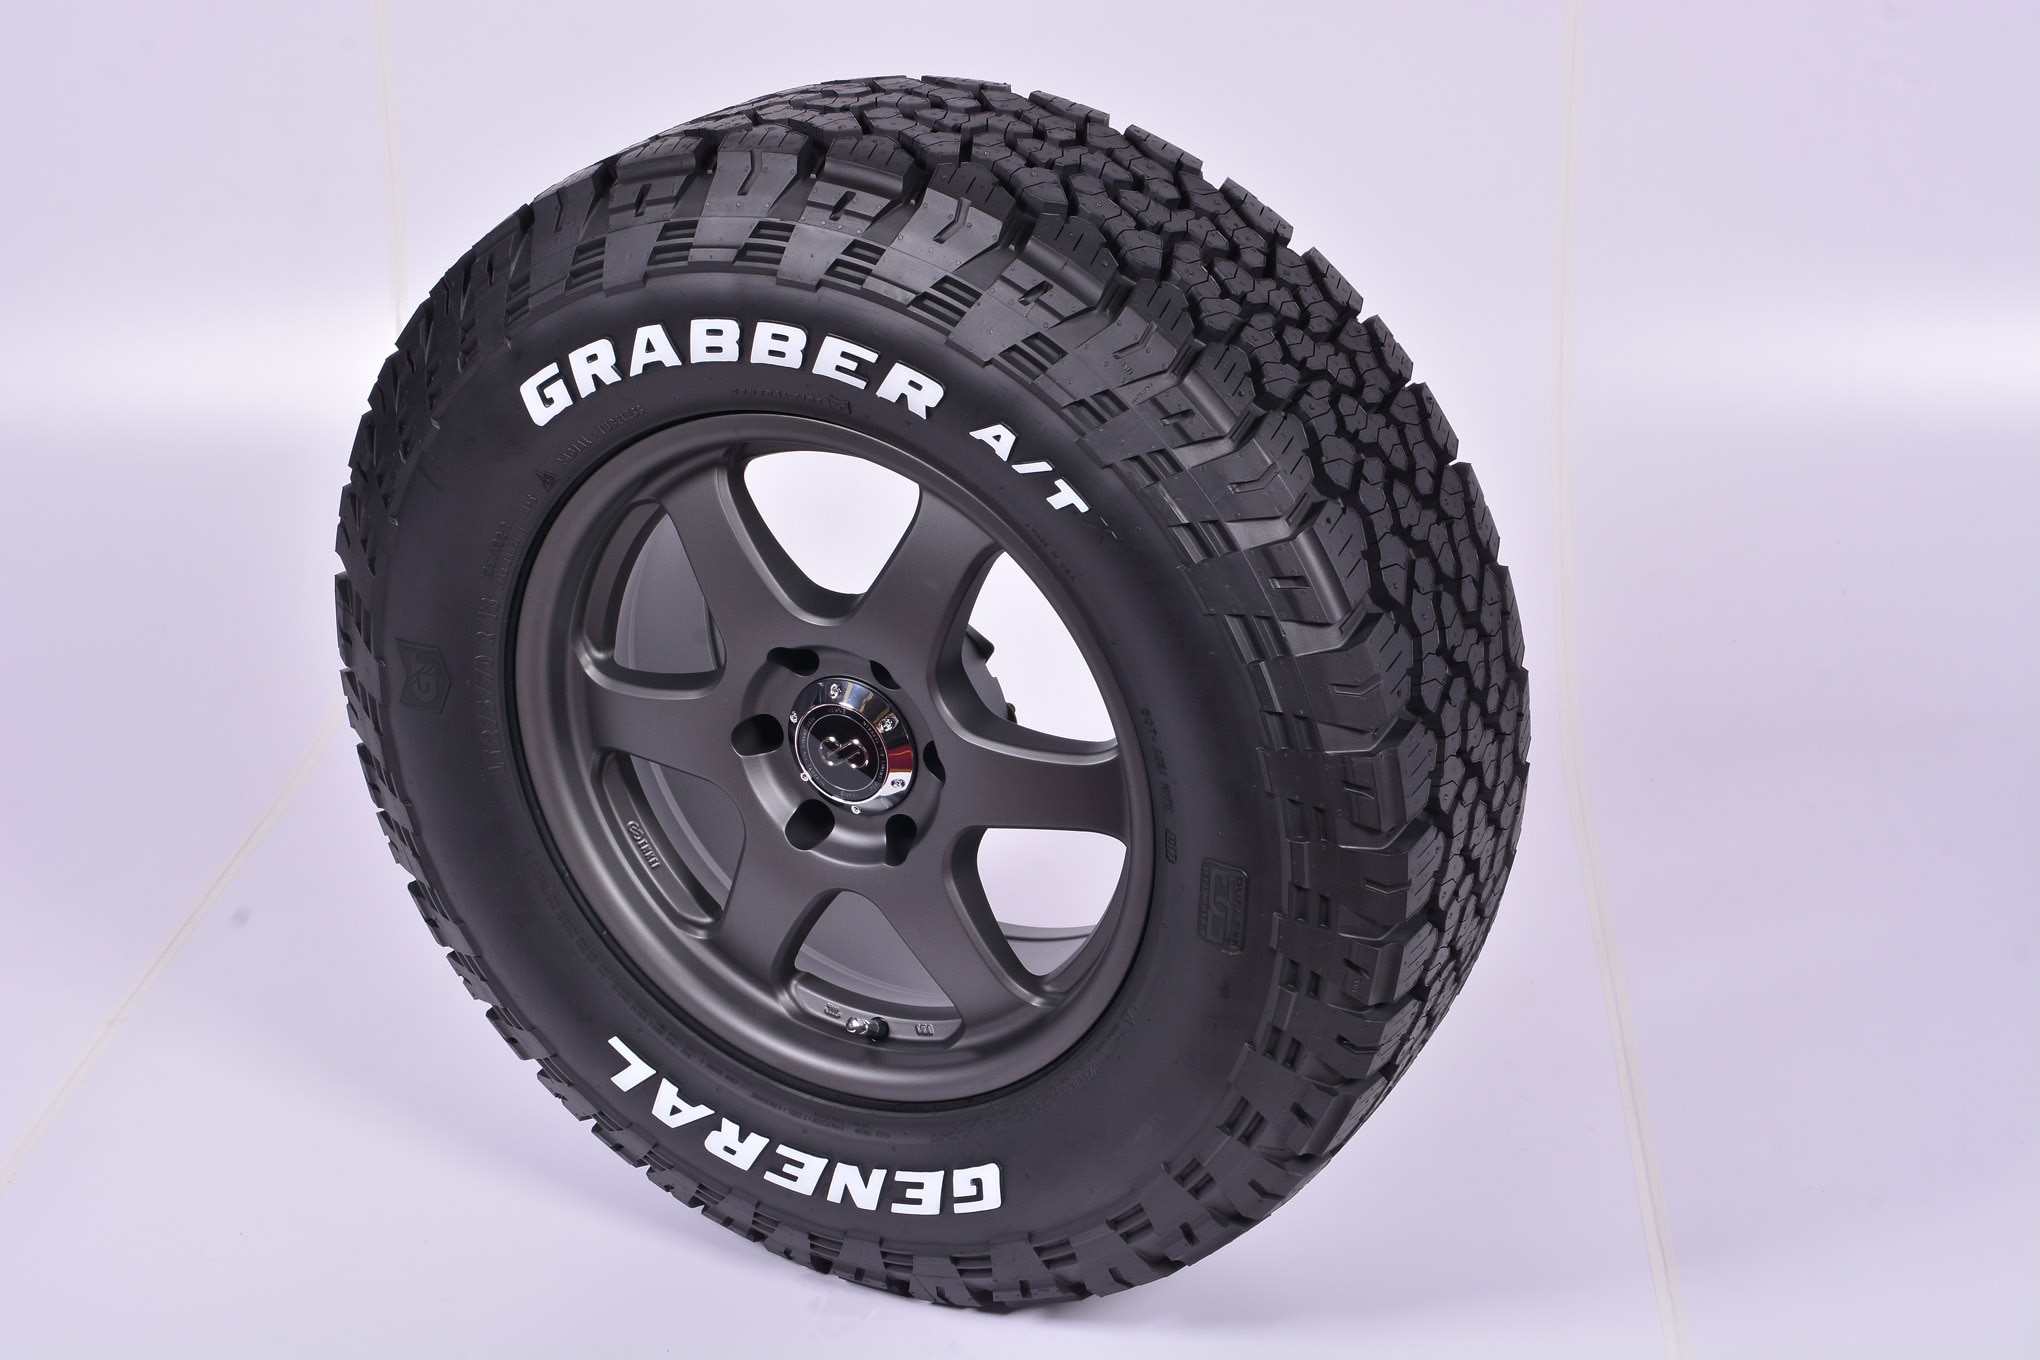 021 new tires general grabber atx